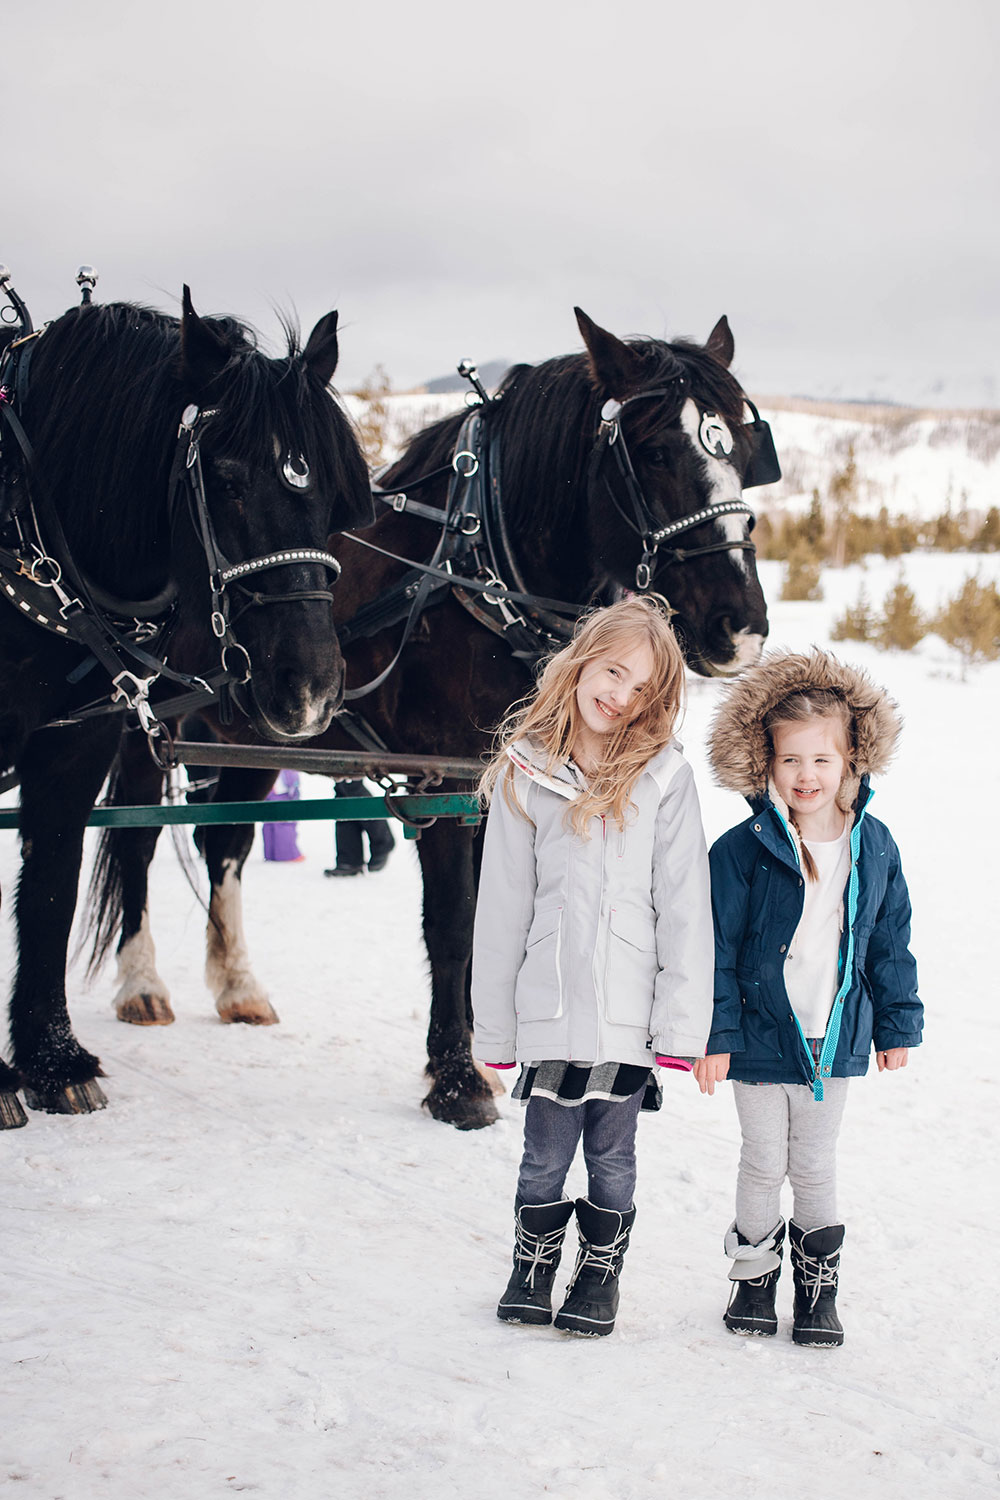 Houston blogger Meg O. shares her family trip to Winter Park Colorado - the sleigh ride at Devil's Thumb Ranch is a wonderful experience for the whole family!